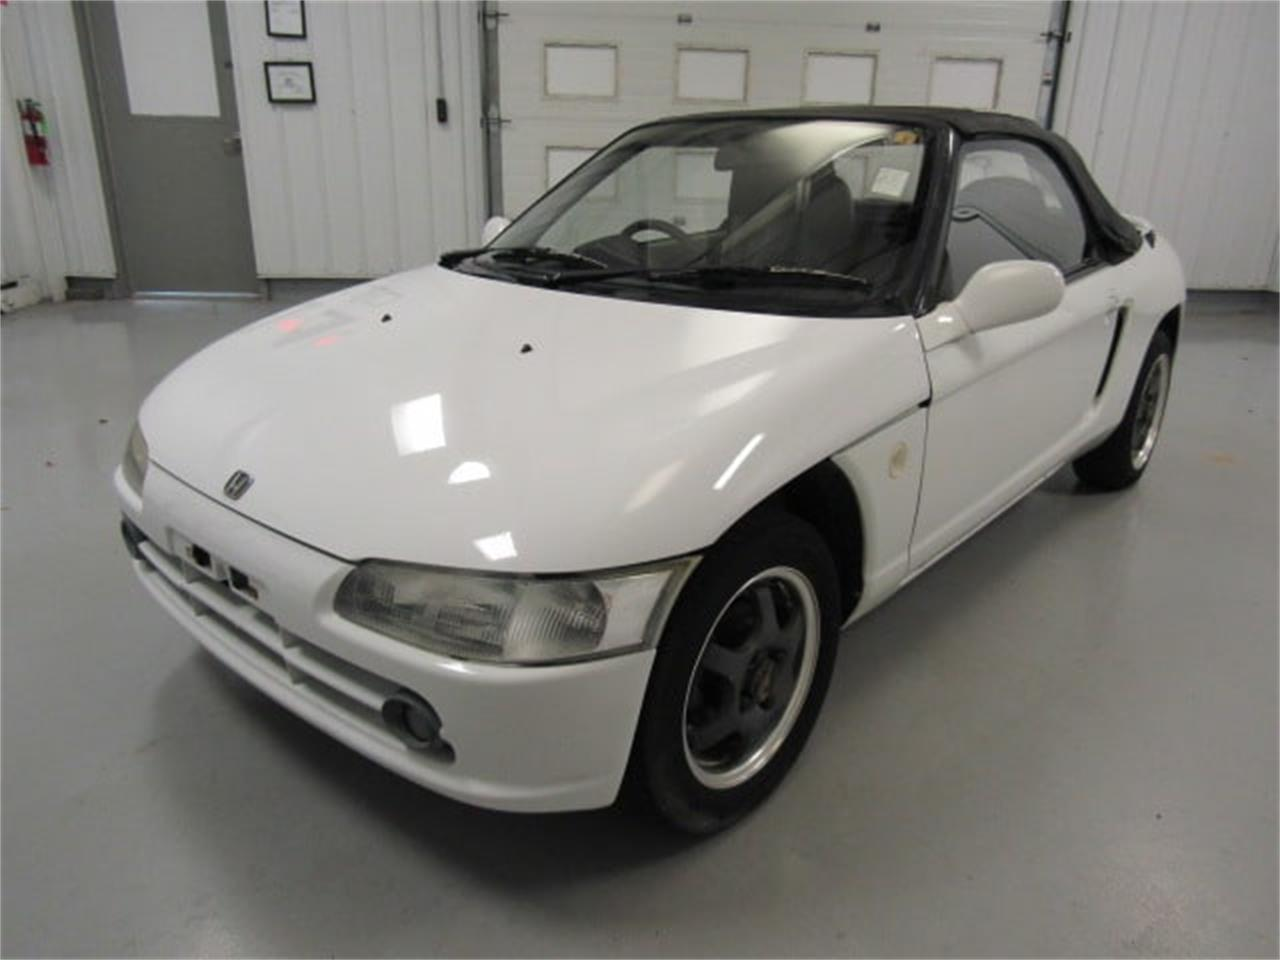 Large Picture of 1991 Honda Beat located in Christiansburg Virginia - $6,900.00 - JL7S